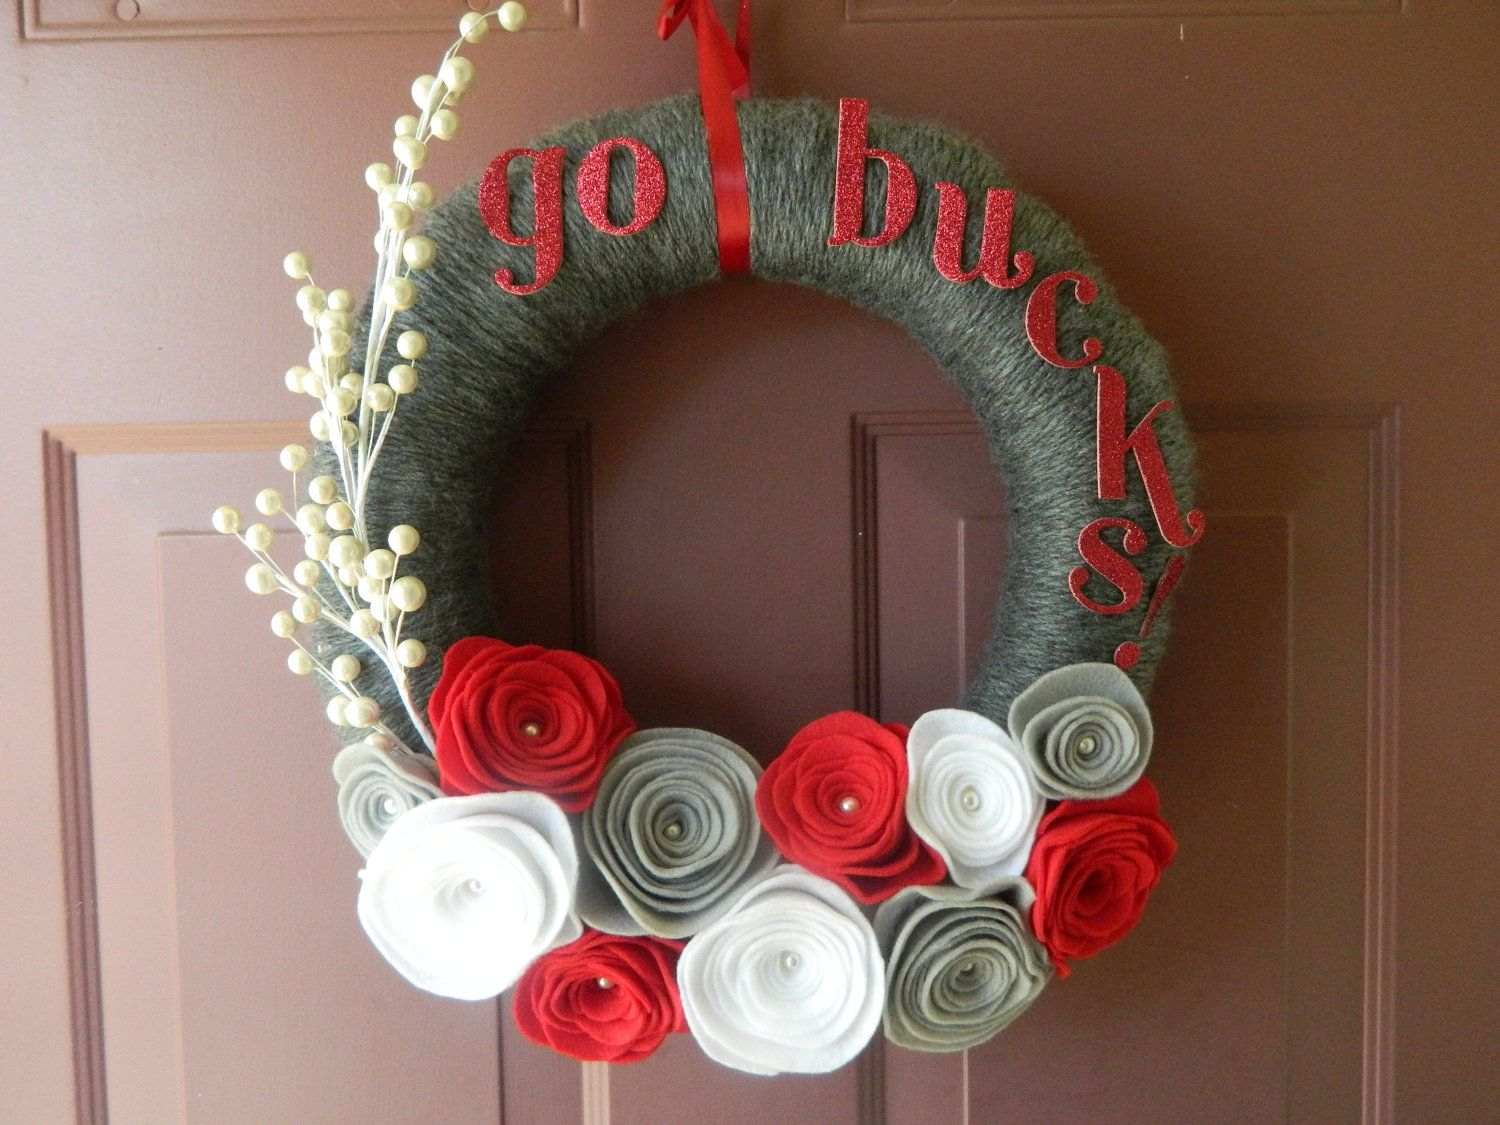 Game day wreath!